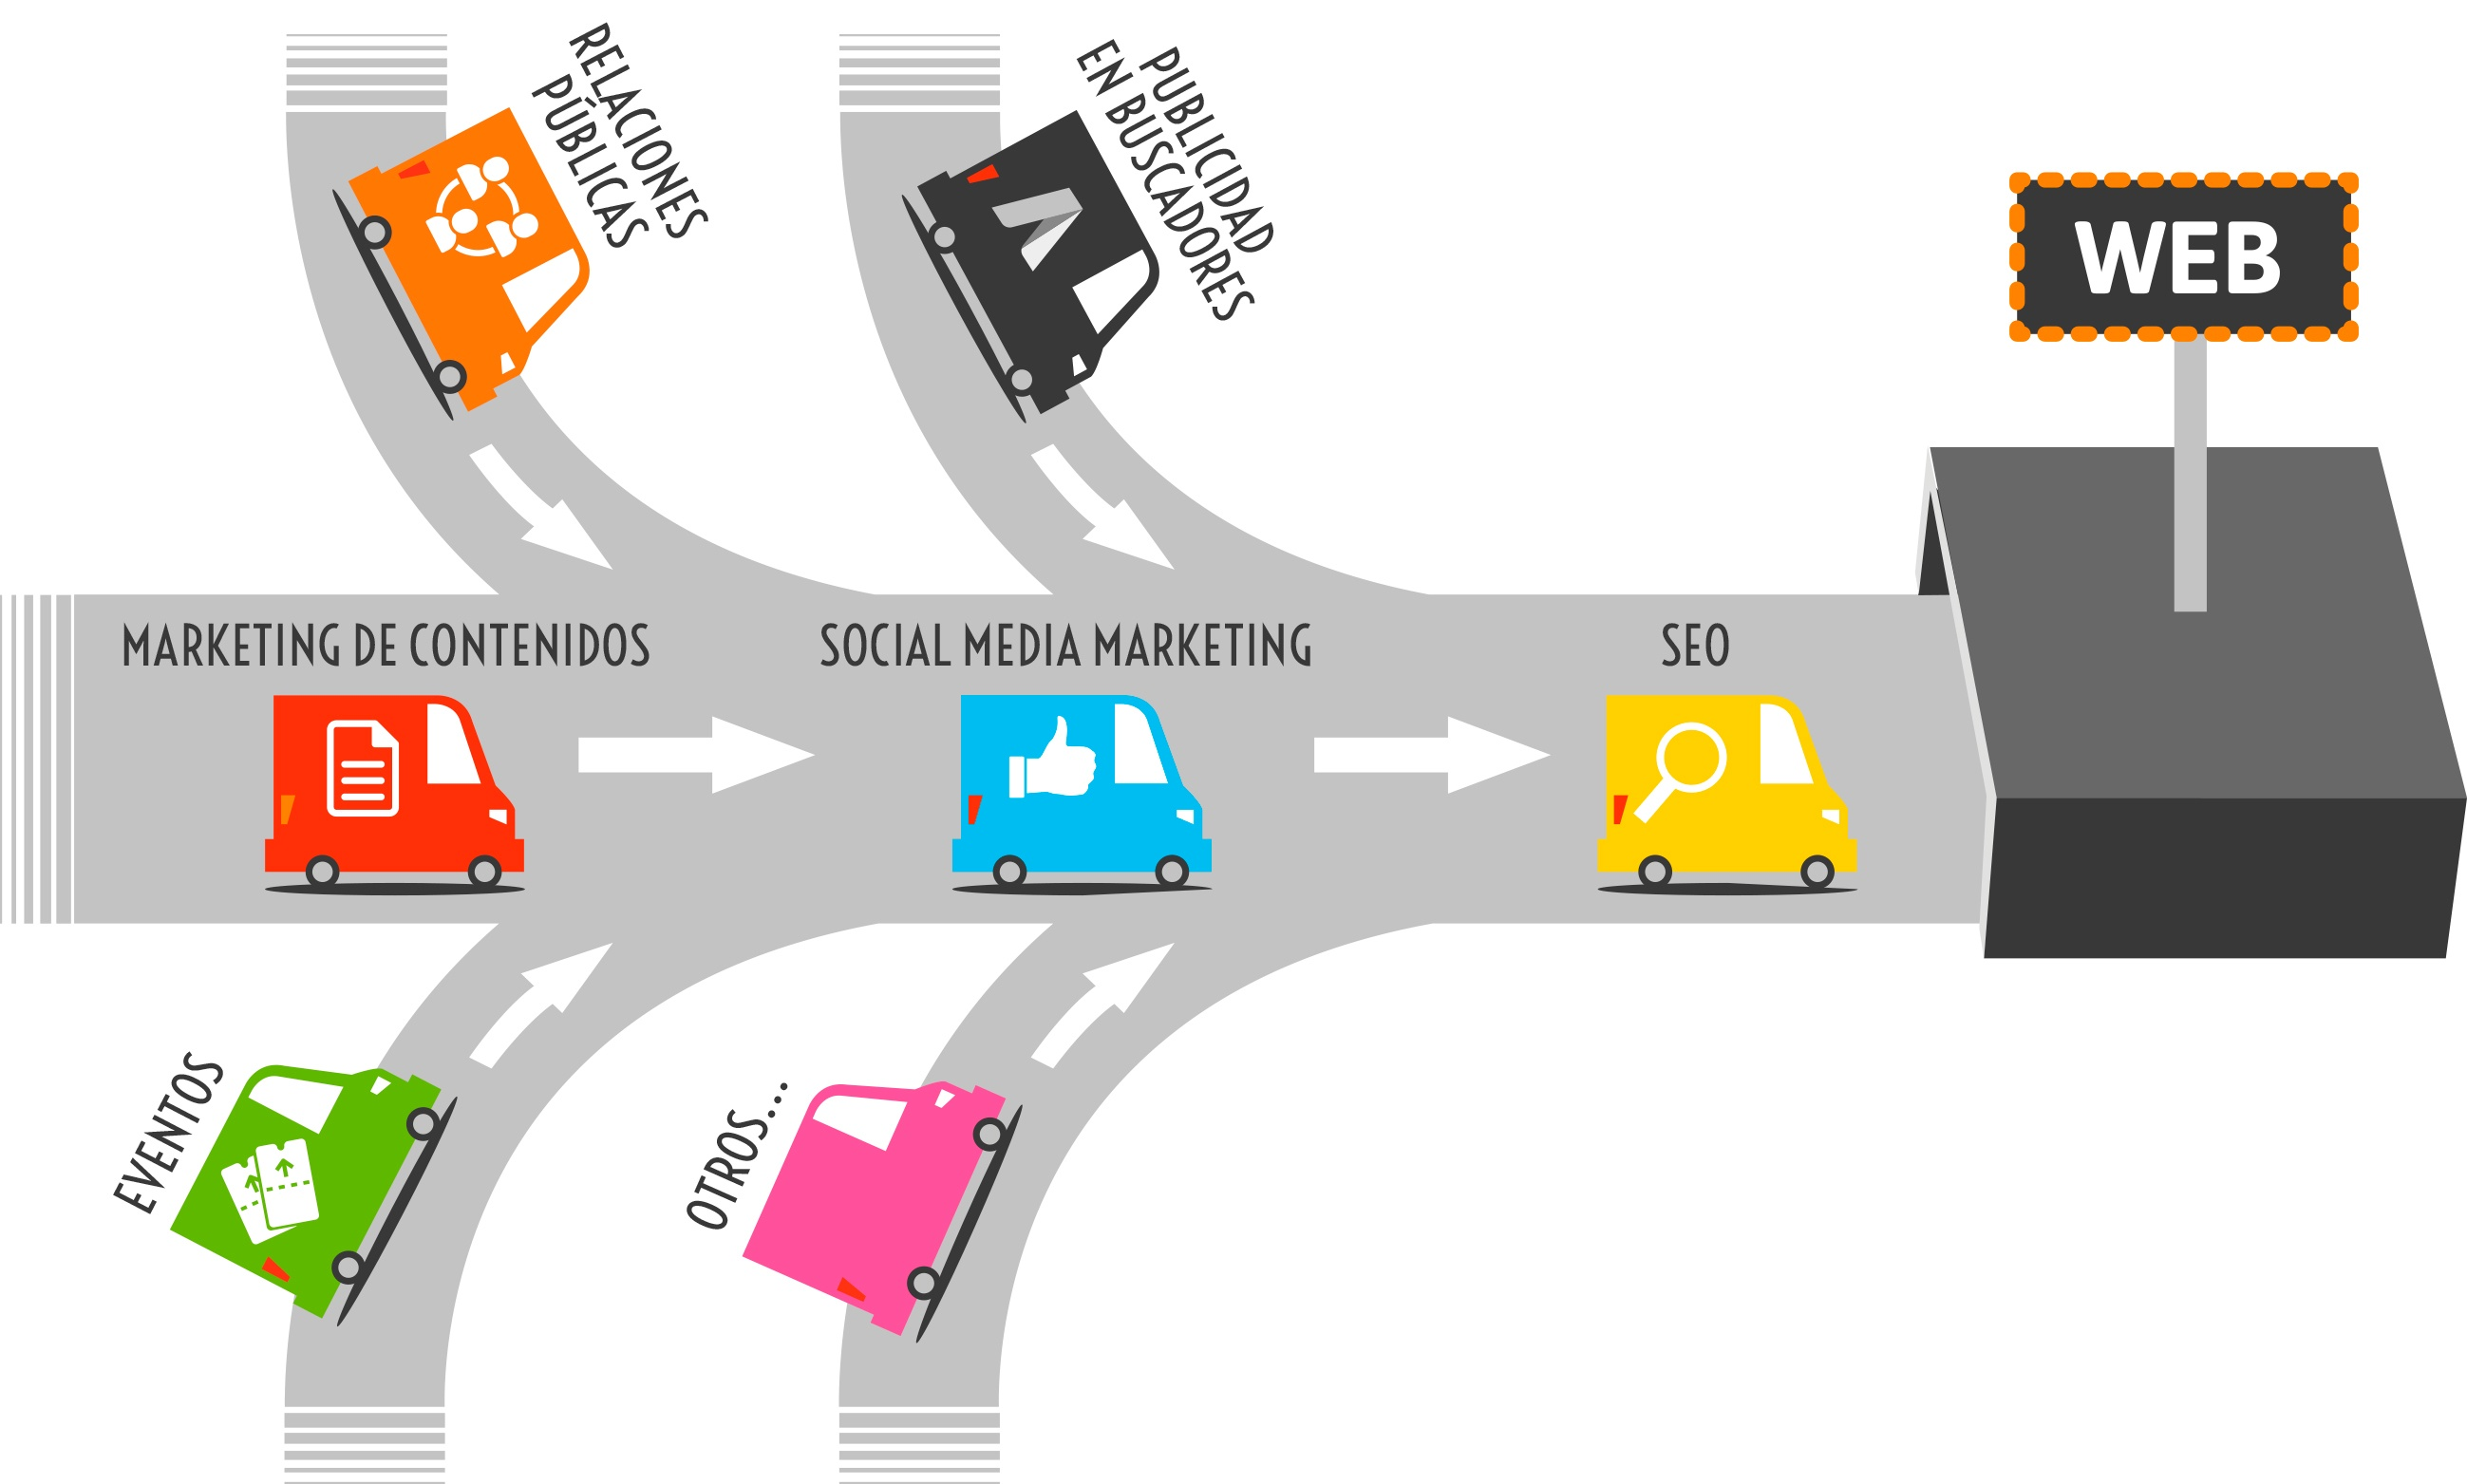 inbound marketing ejemplos atraccion de trafico